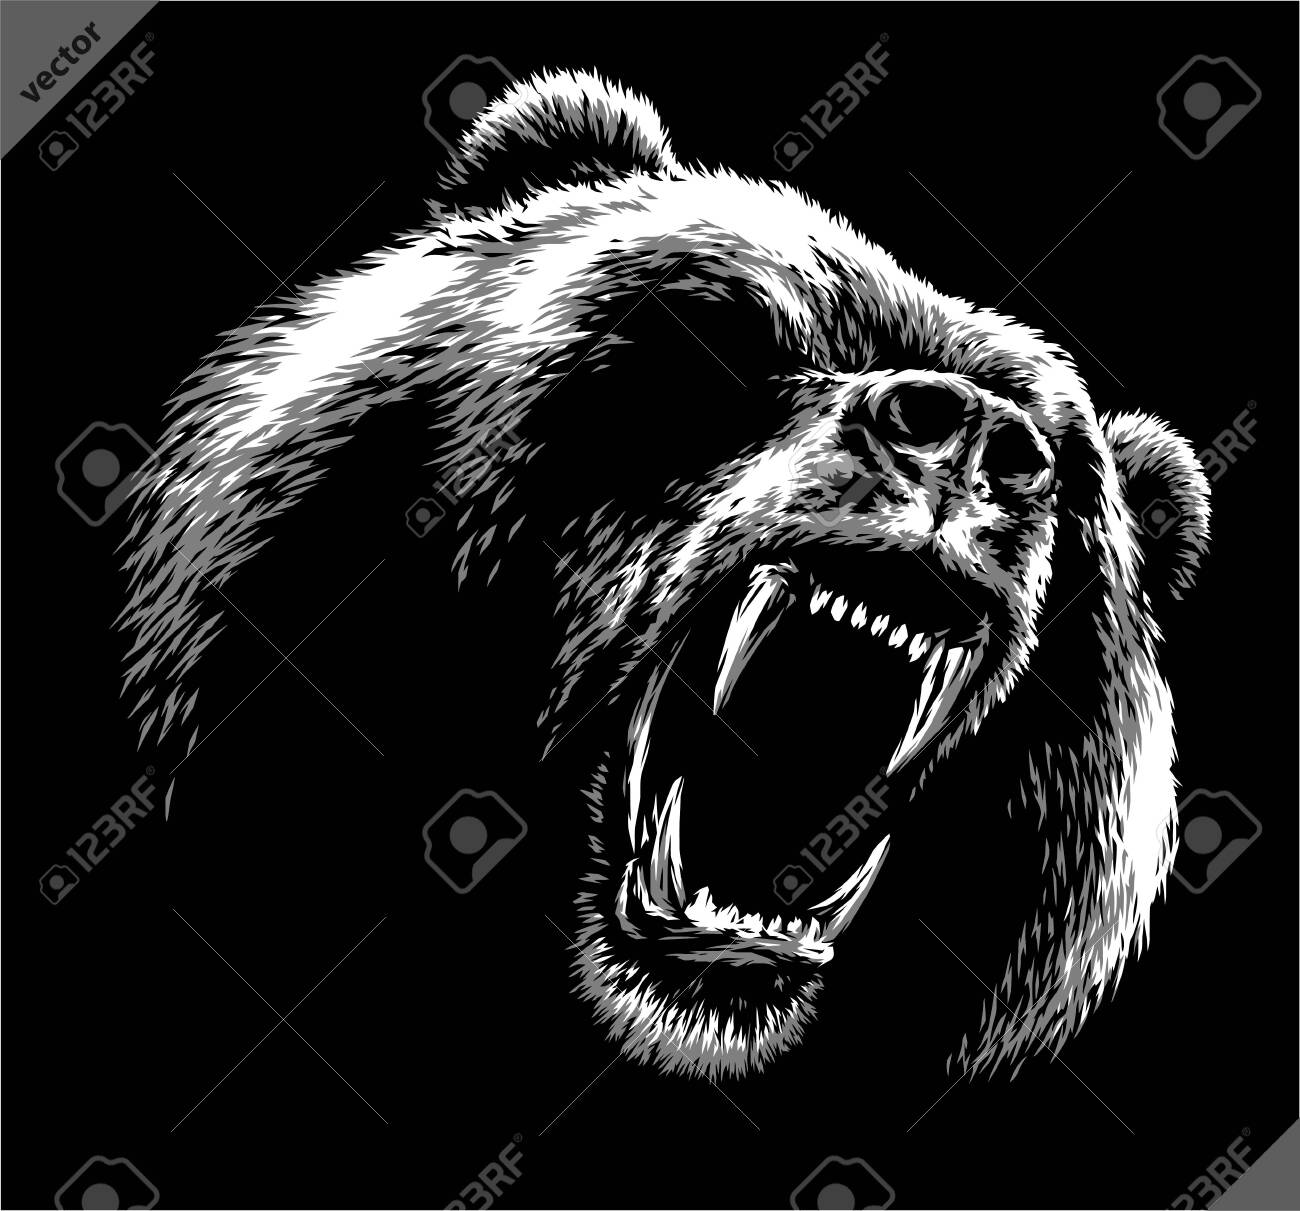 black and white linear draw bear vector illustration - 155802522